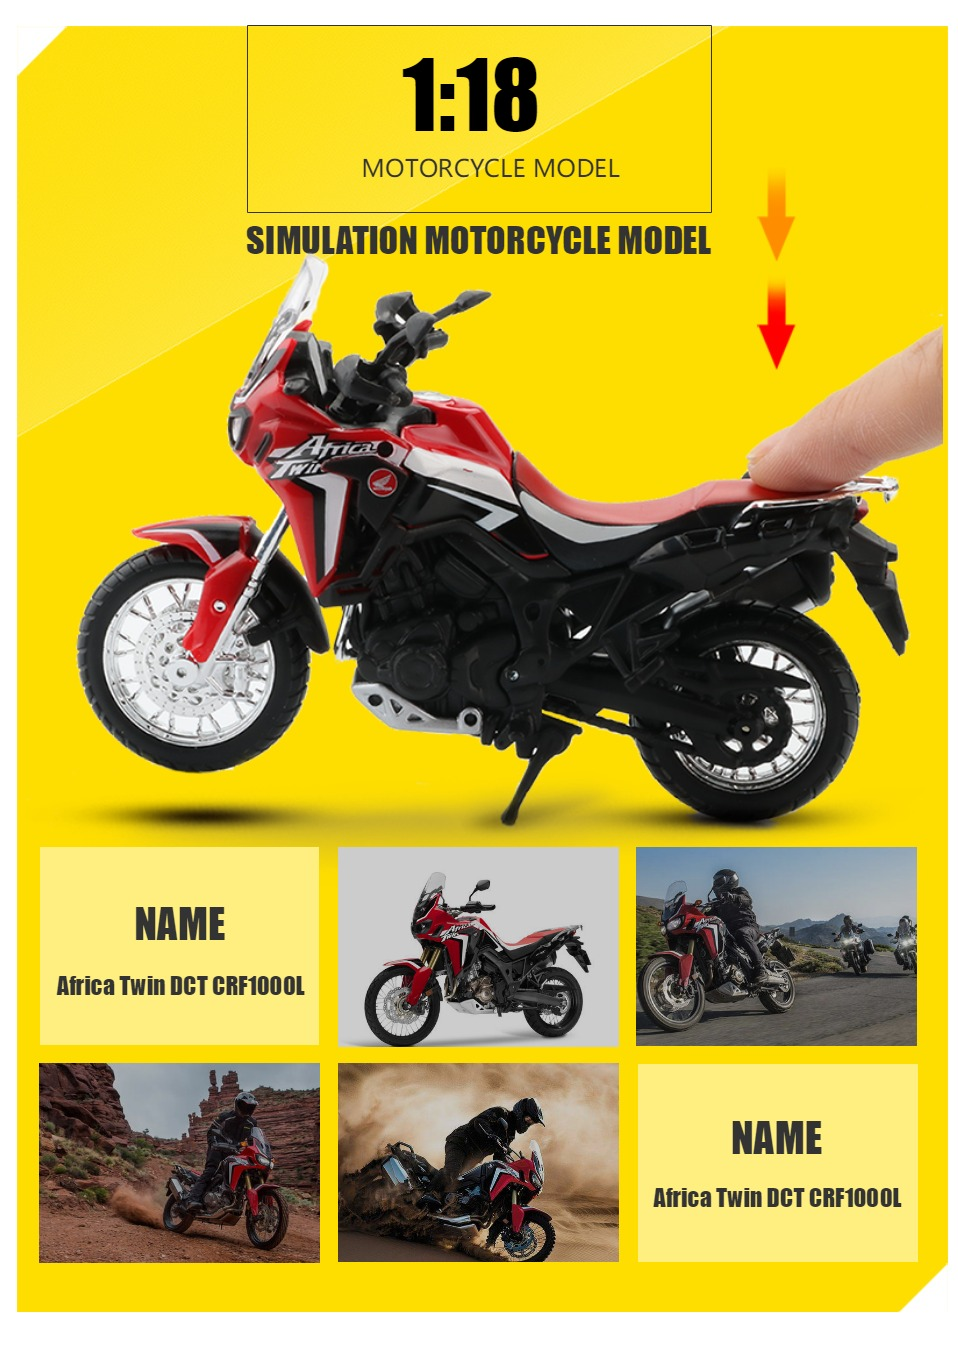 Africa Twin DCT CRF1000L Motorcycle Toy Model 8